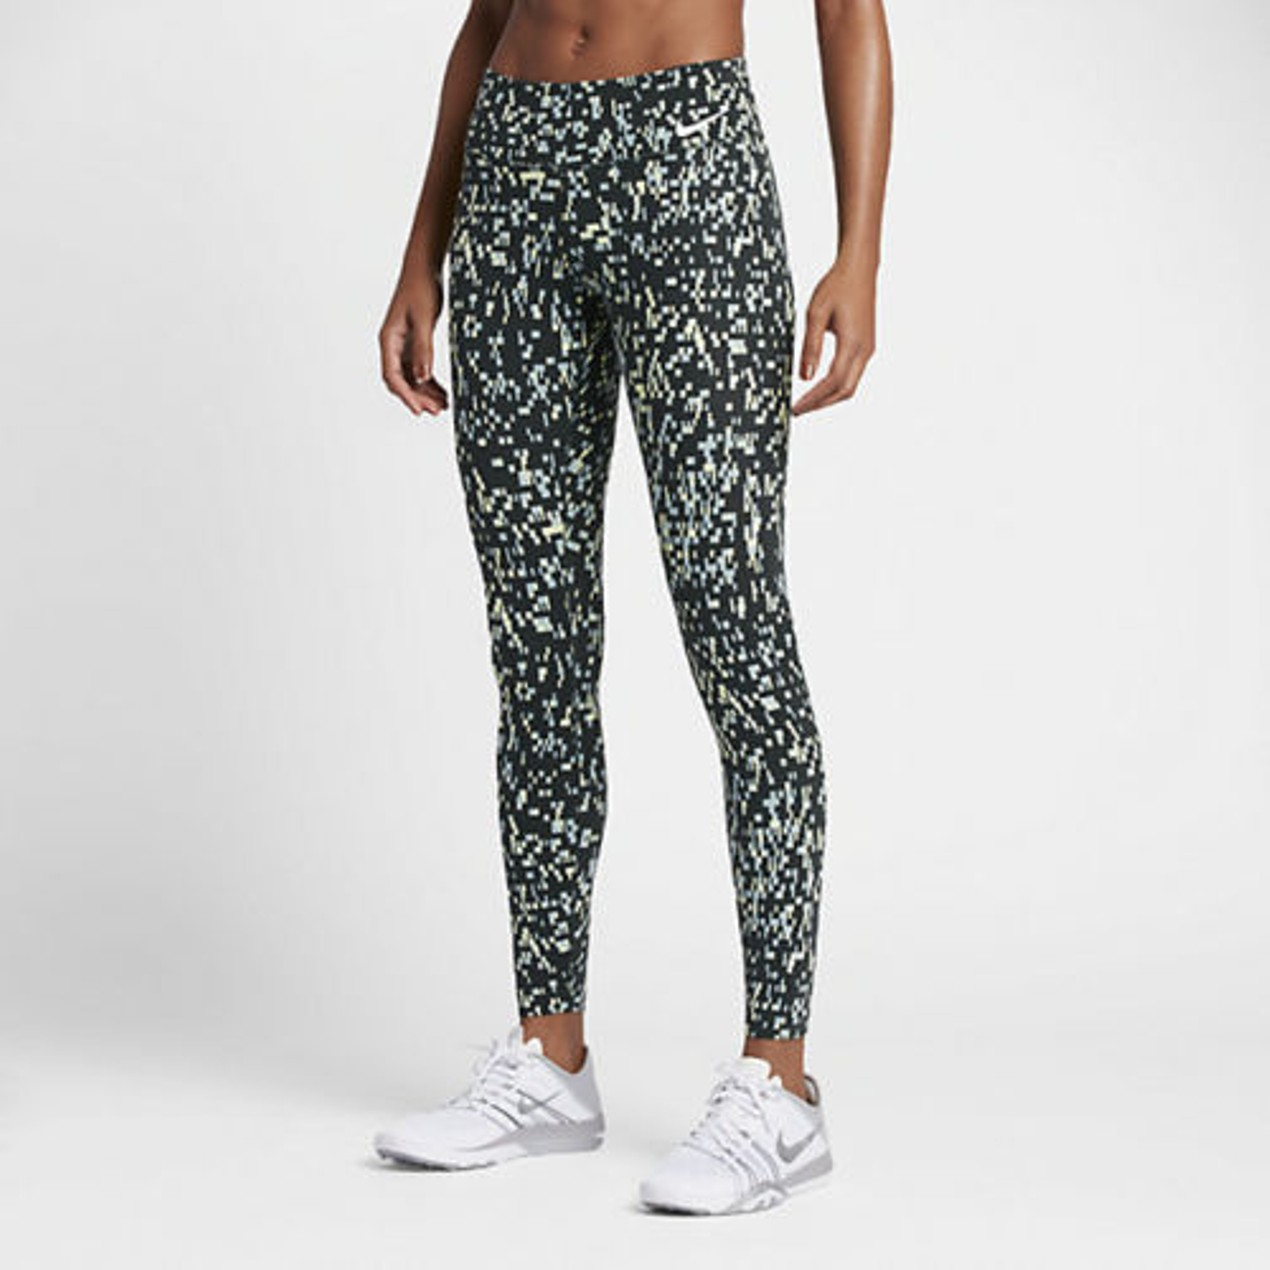 cc9f9de68d9c7 Nike Power Legendary Women's Printed Mid Rise Training Tights (803018- ...